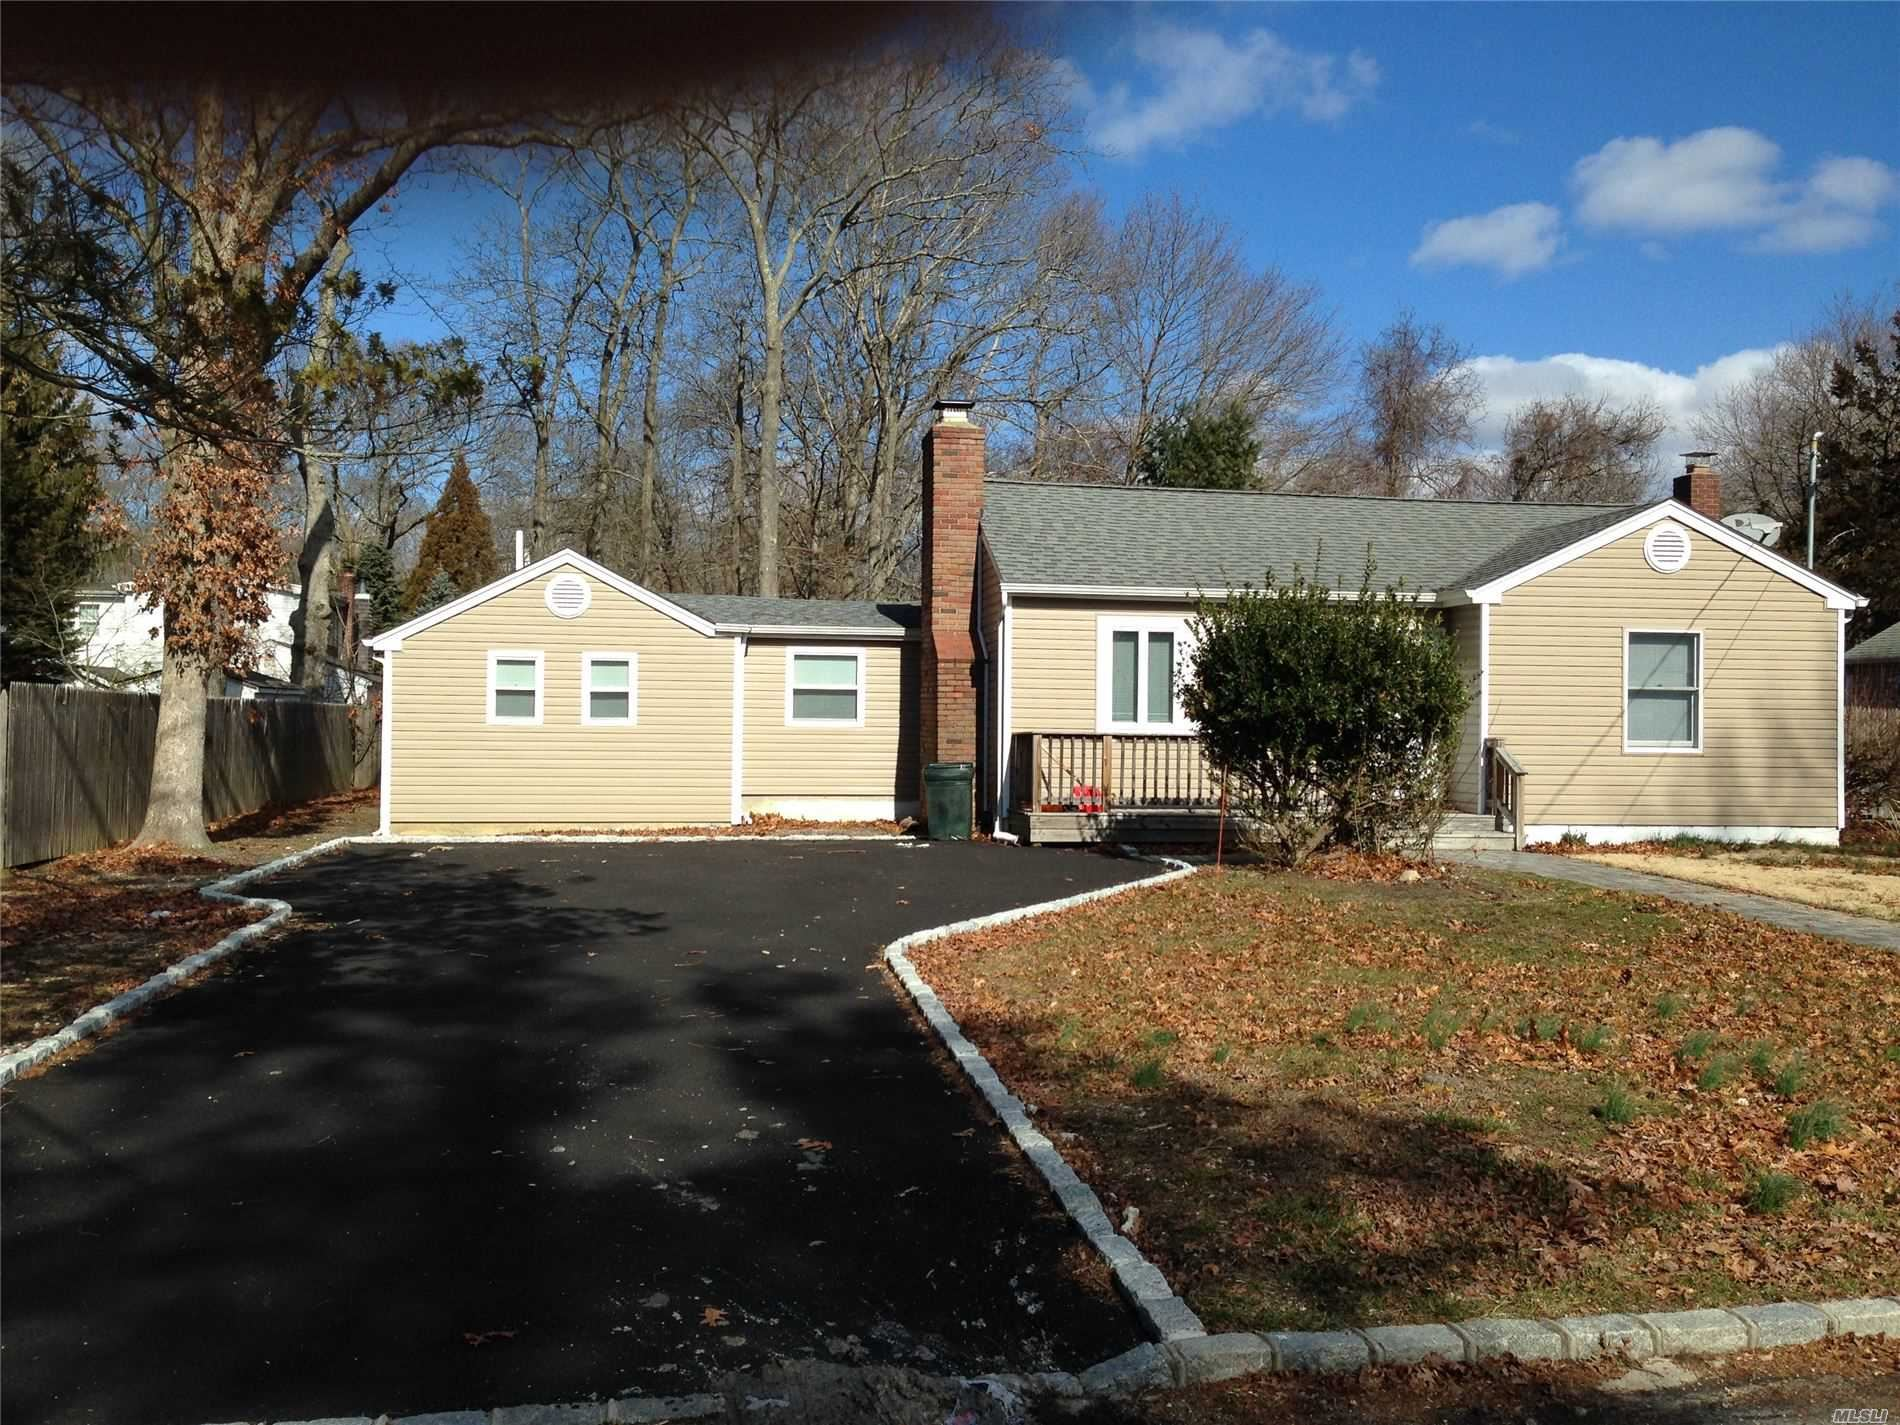 45 George Street, E. Patchogue, NY 11772 - MLS#: 3200201